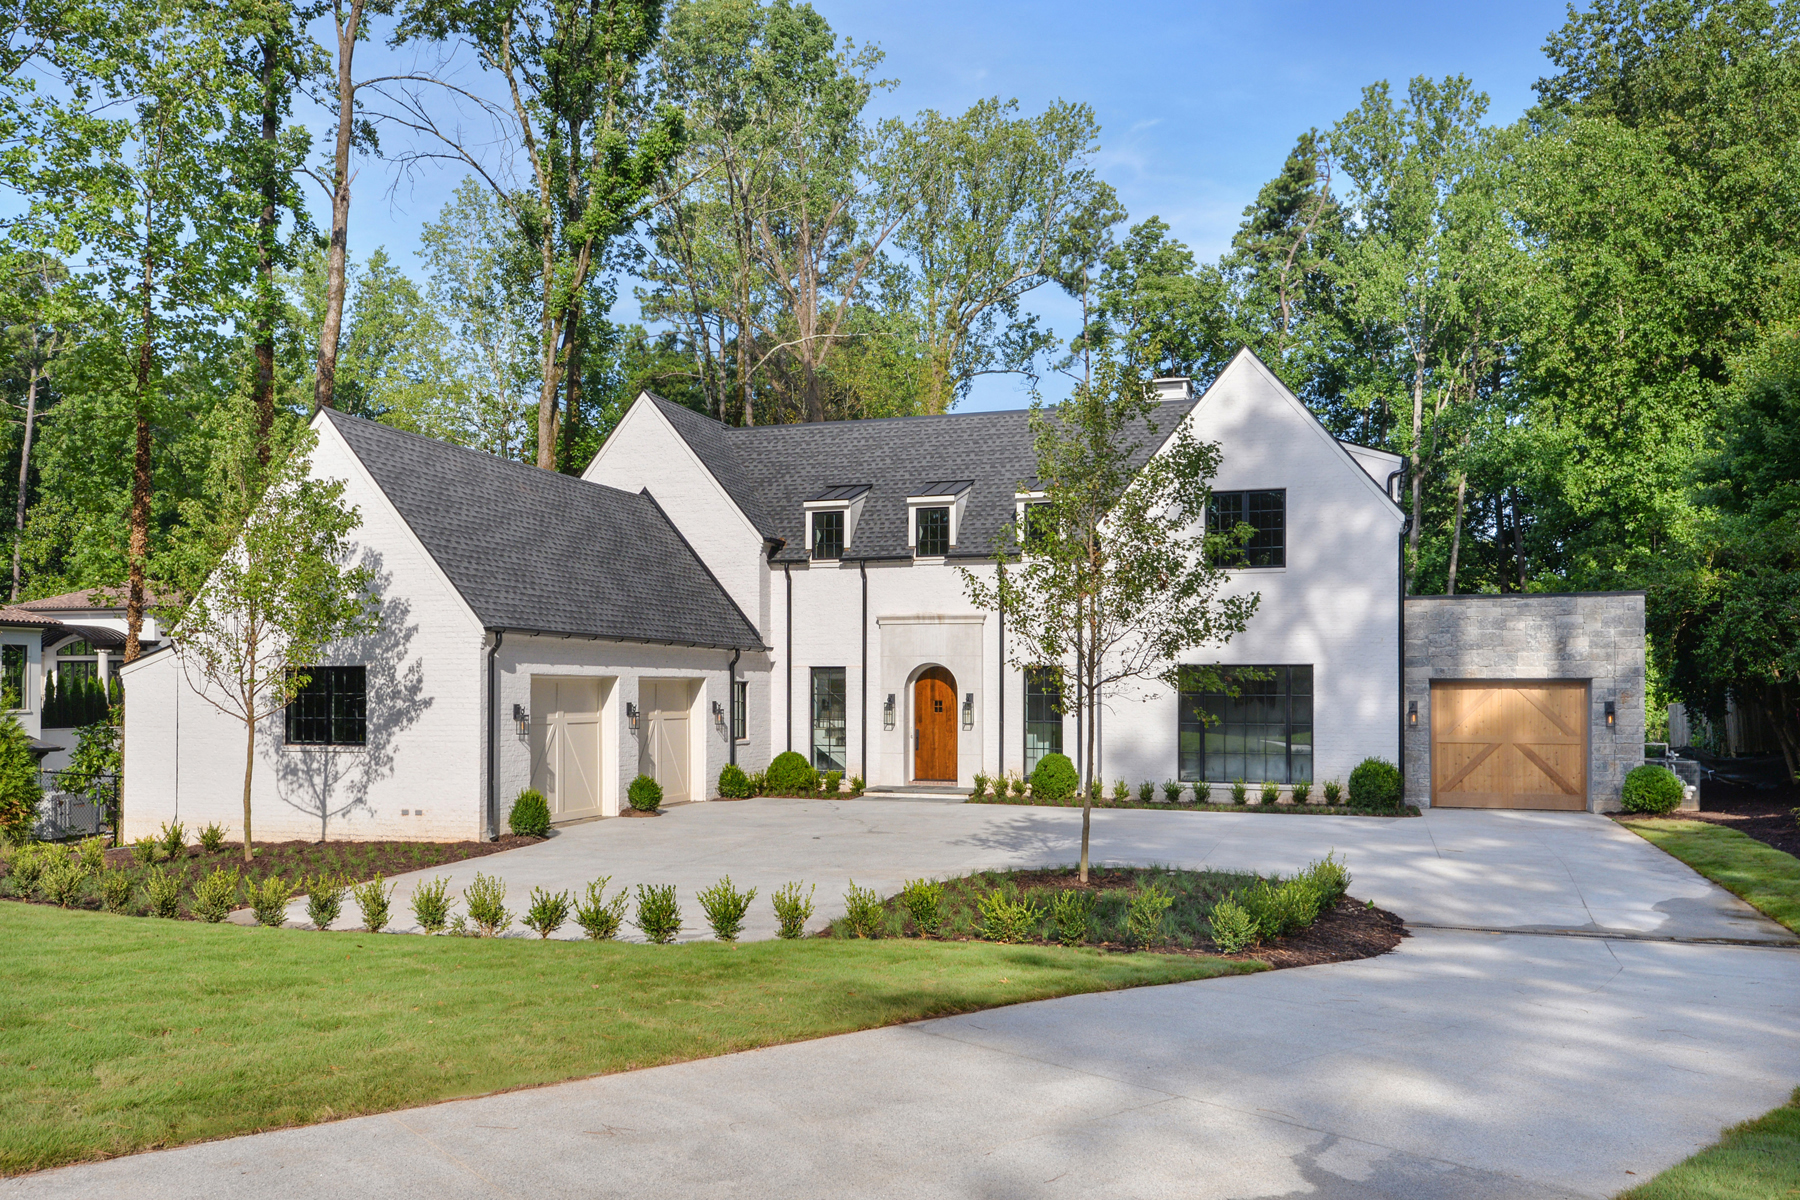 Single Family Home for Sale at Classic Traditional Design With A Contemporary Edge 4560 Peachtree Dunwoody Road NE Sandy Springs, Georgia 30342 United States